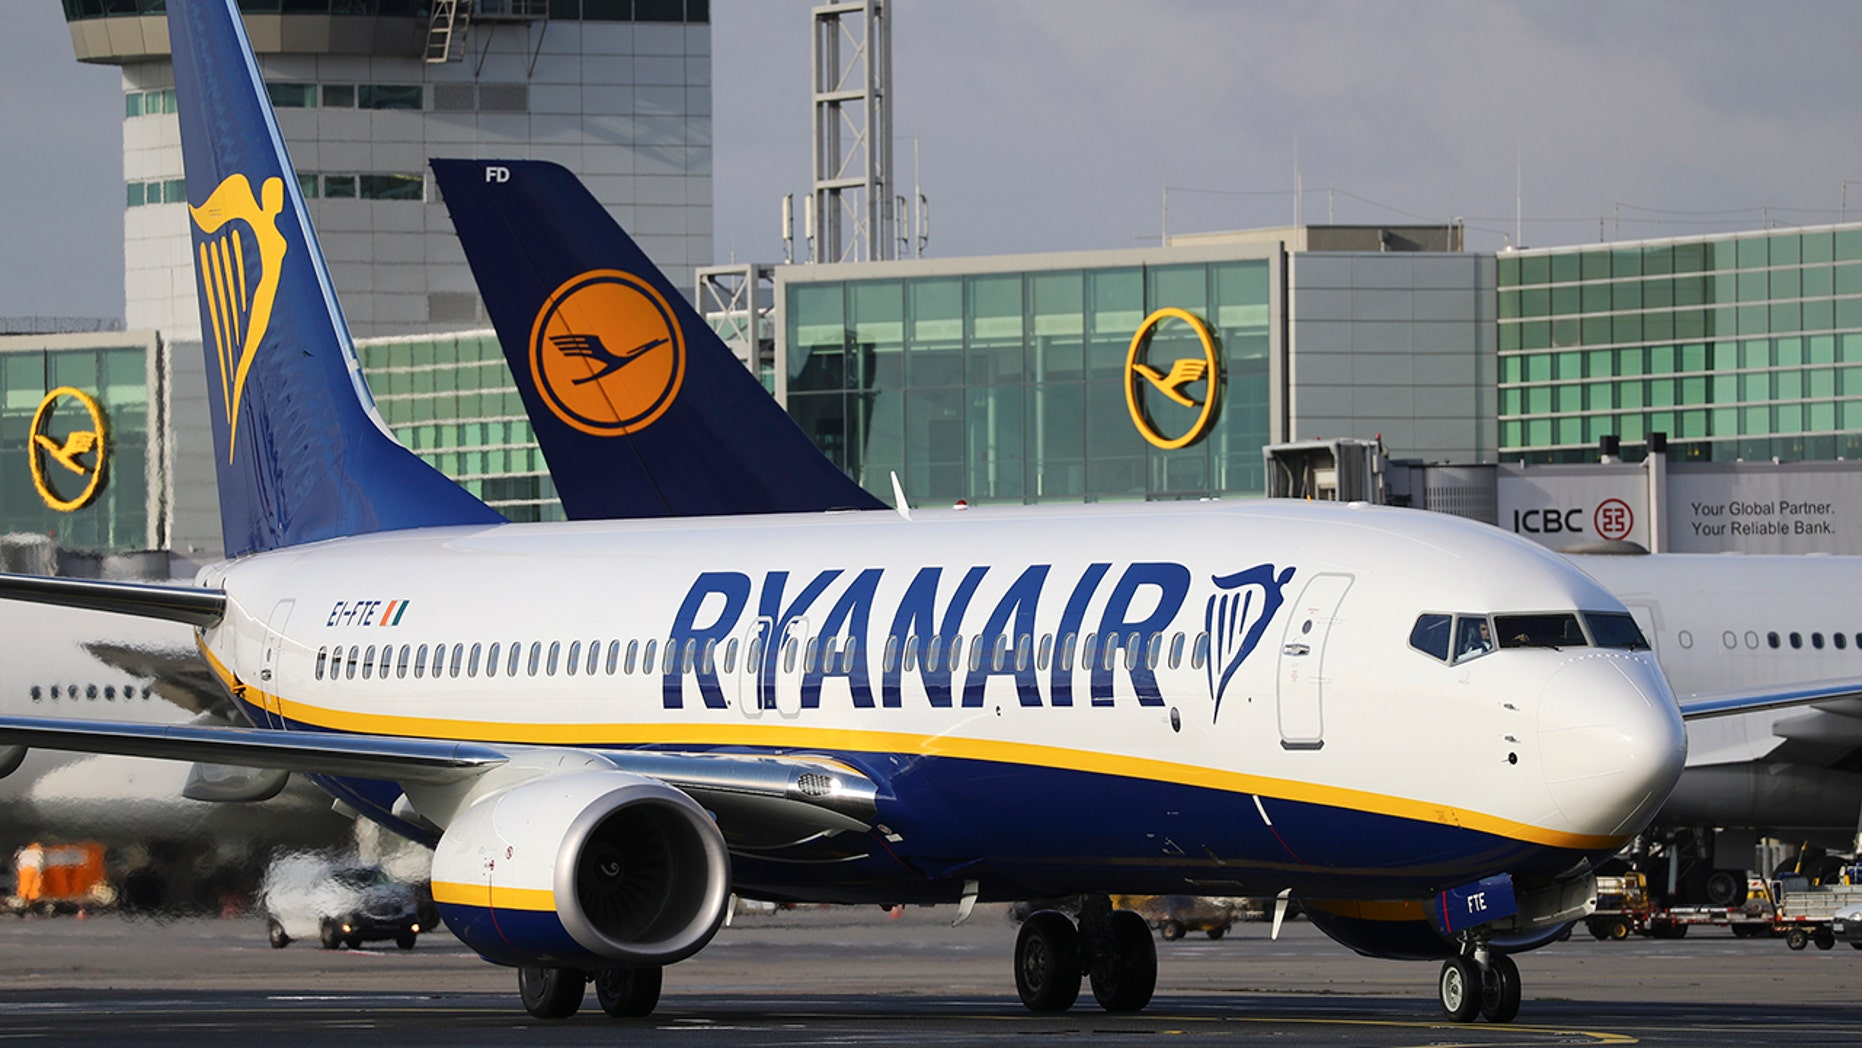 Ryanair is being accused of using intimidating tactics to keep passengers from pursuing refunds.